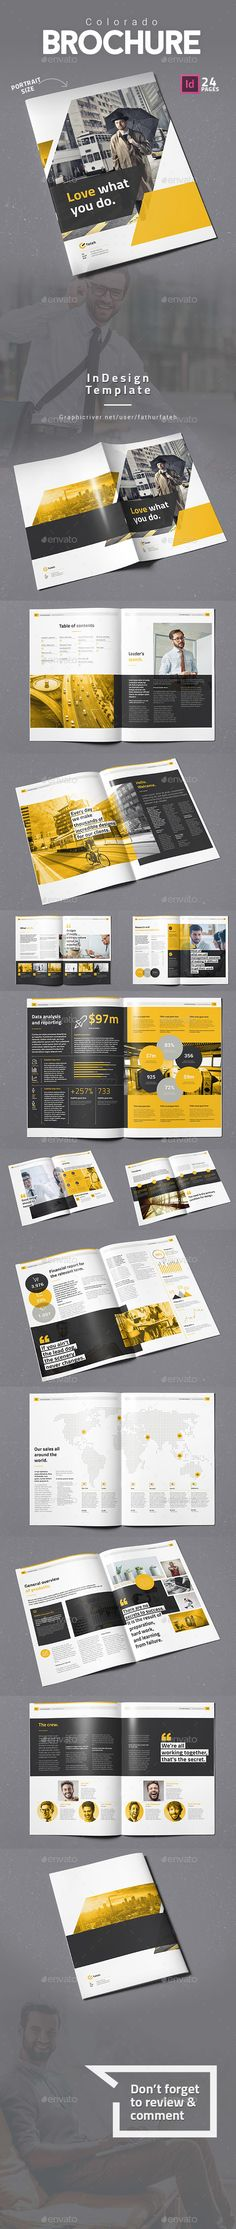 Buy Colorado Brochure by fathurfateh on GraphicRiver. Colorado Brochure – Portrait template is a 24 pages Indesign brochure template available in size. Print ready or e. Brochure Layout, Corporate Brochure, Brochure Design, Print Layout, Layout Design, Print Design, Graphic Design, Magazine Examples, Indesign Brochure Templates